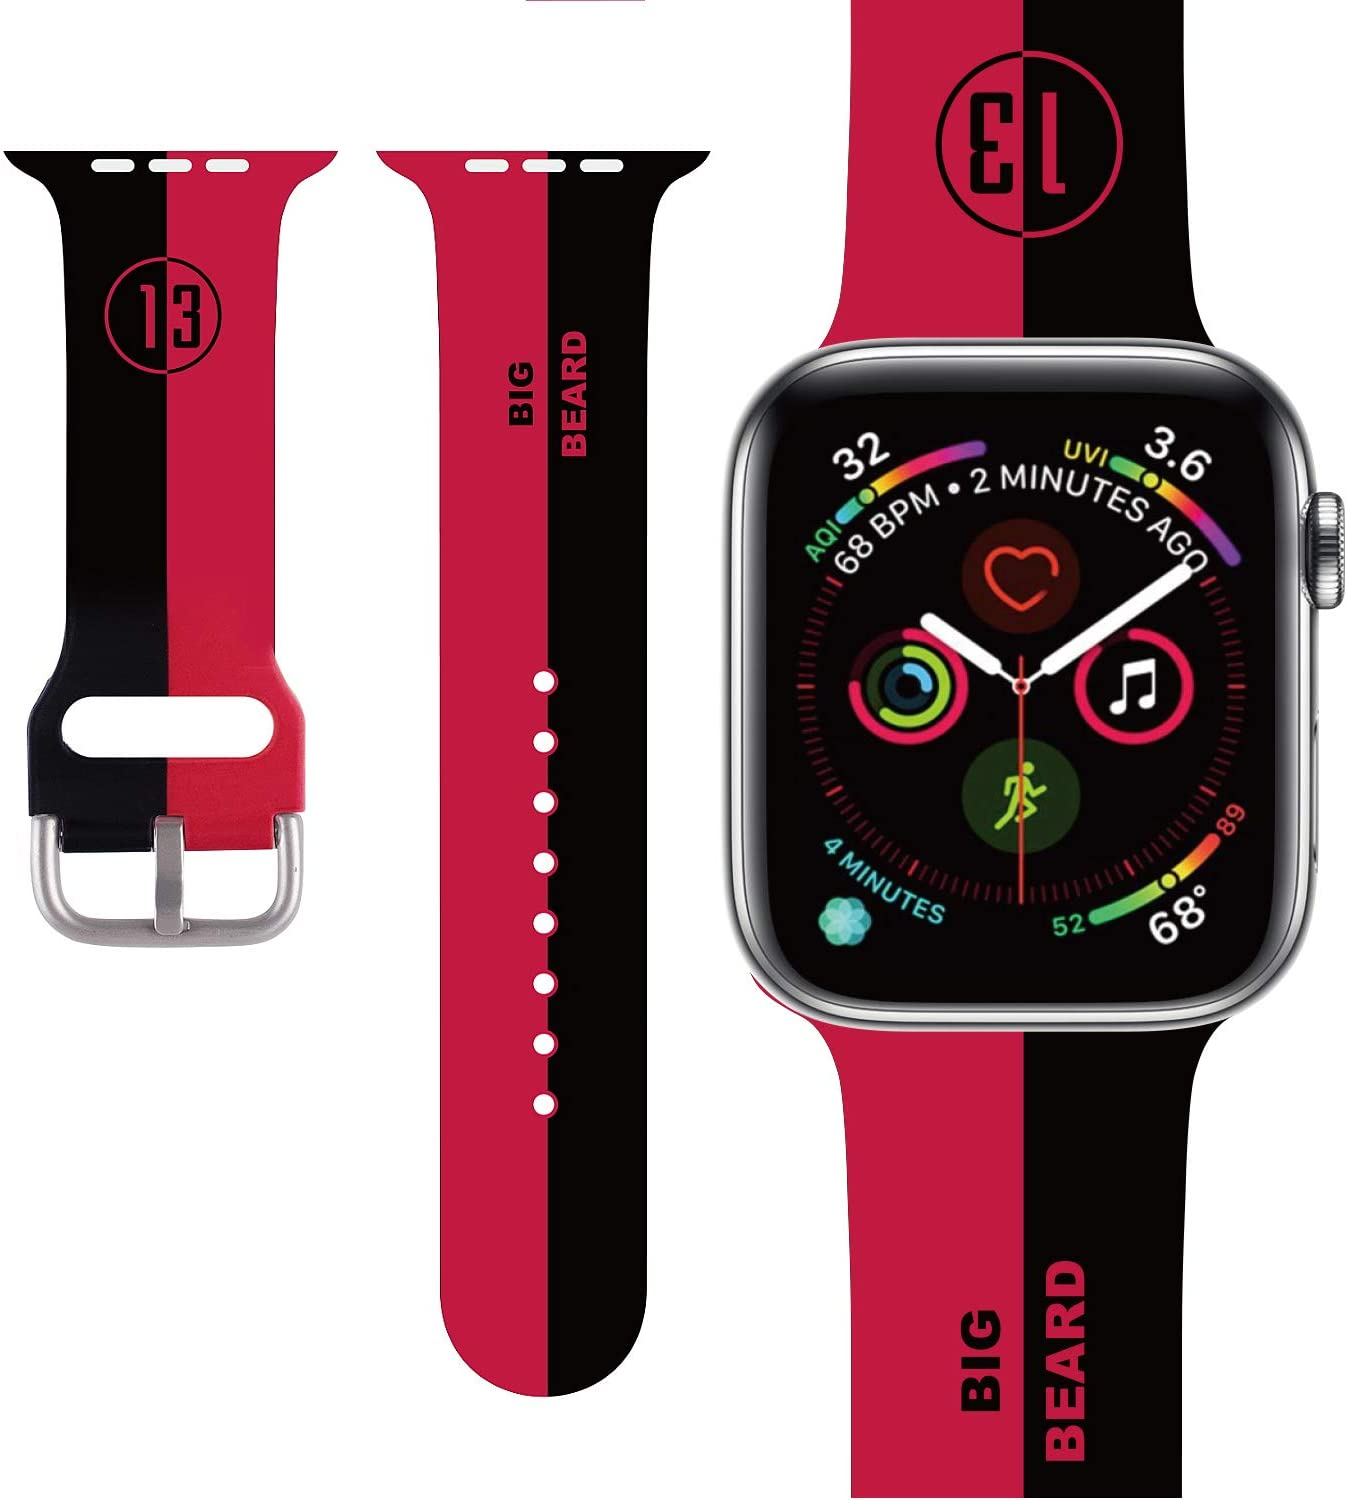 Basketball design Compatible with Apple Watch Band 38mm/40mm/42mm/44mm,Classic Cute Fashion for Kids Men Boys Character Silicone Band Compatible iWatch Series 5,Series 4,Series 3,Series 2,Series 9